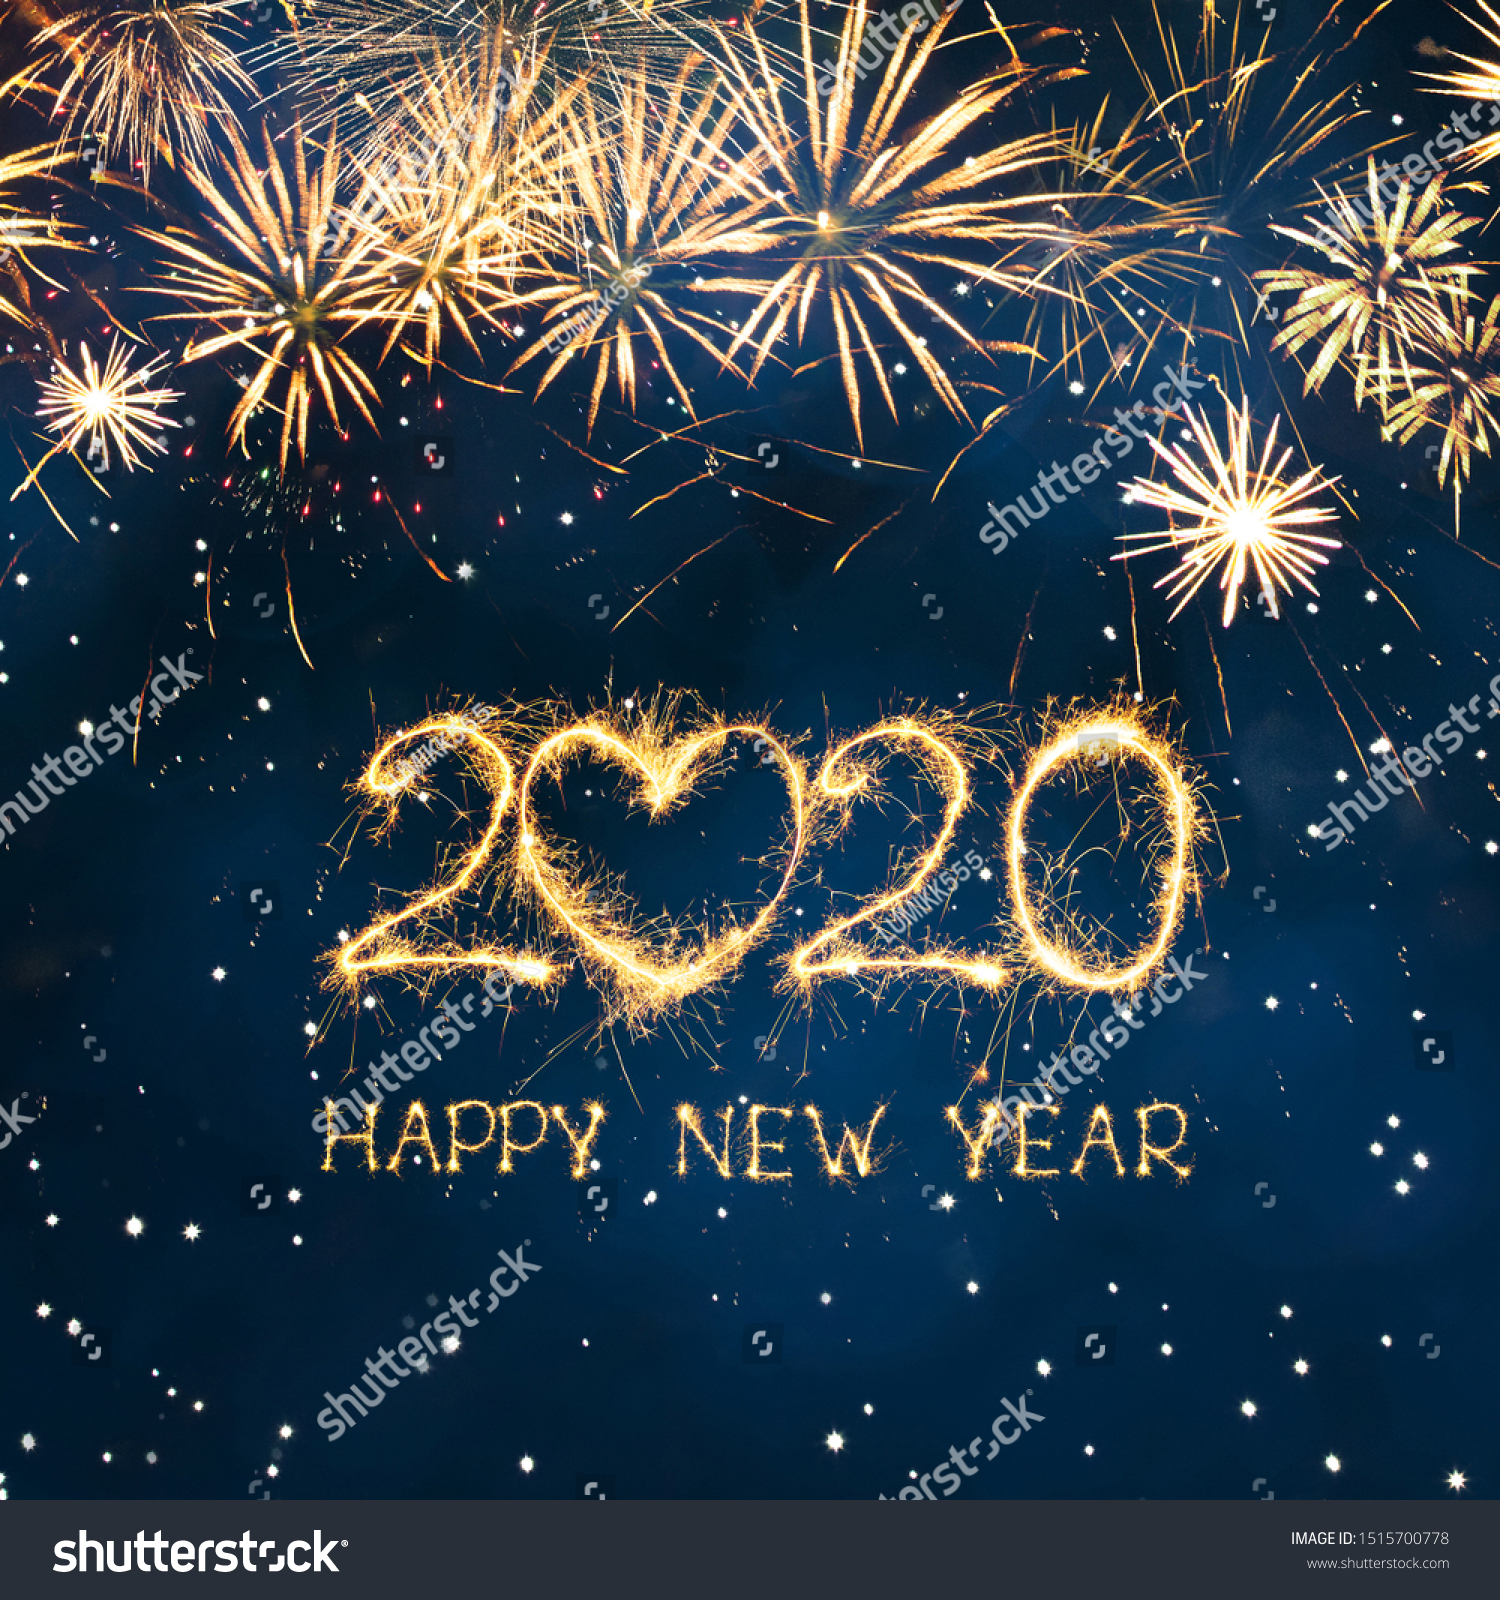 Greeting card Happy New Year 2020. Beautiful Square holiday web banner or billboard with Golden sparkling text Happy New Year 2020 written sparklers on festive blue background. #1515700778